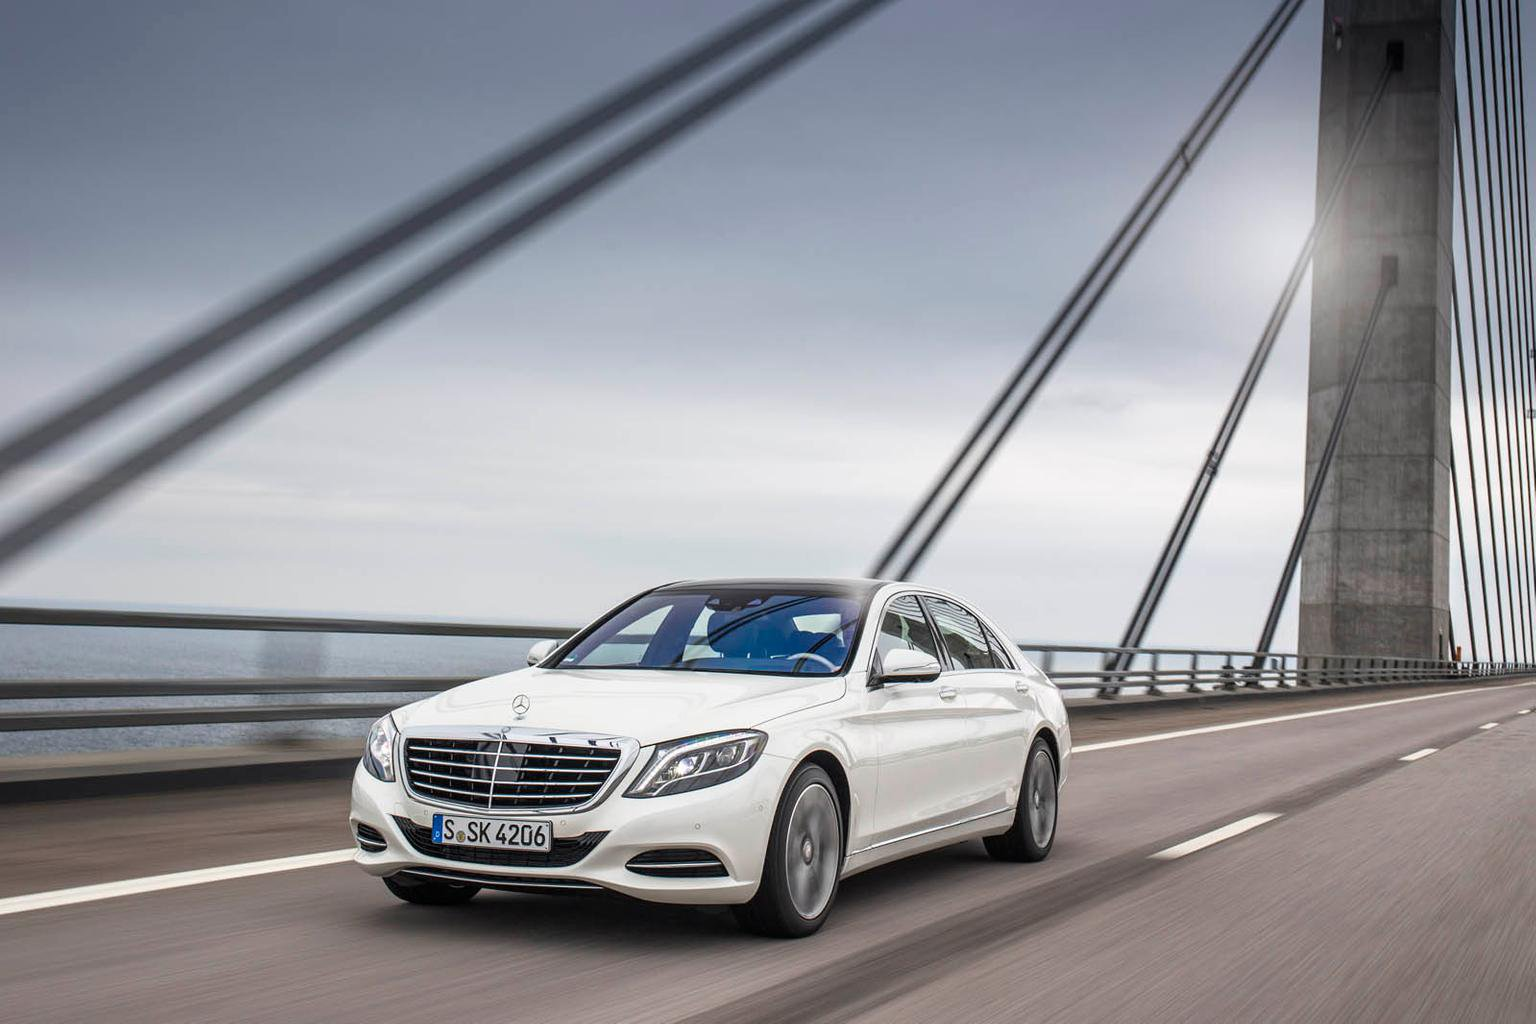 2014 Mercedes-Benz S500 Plug-in Hybrid review